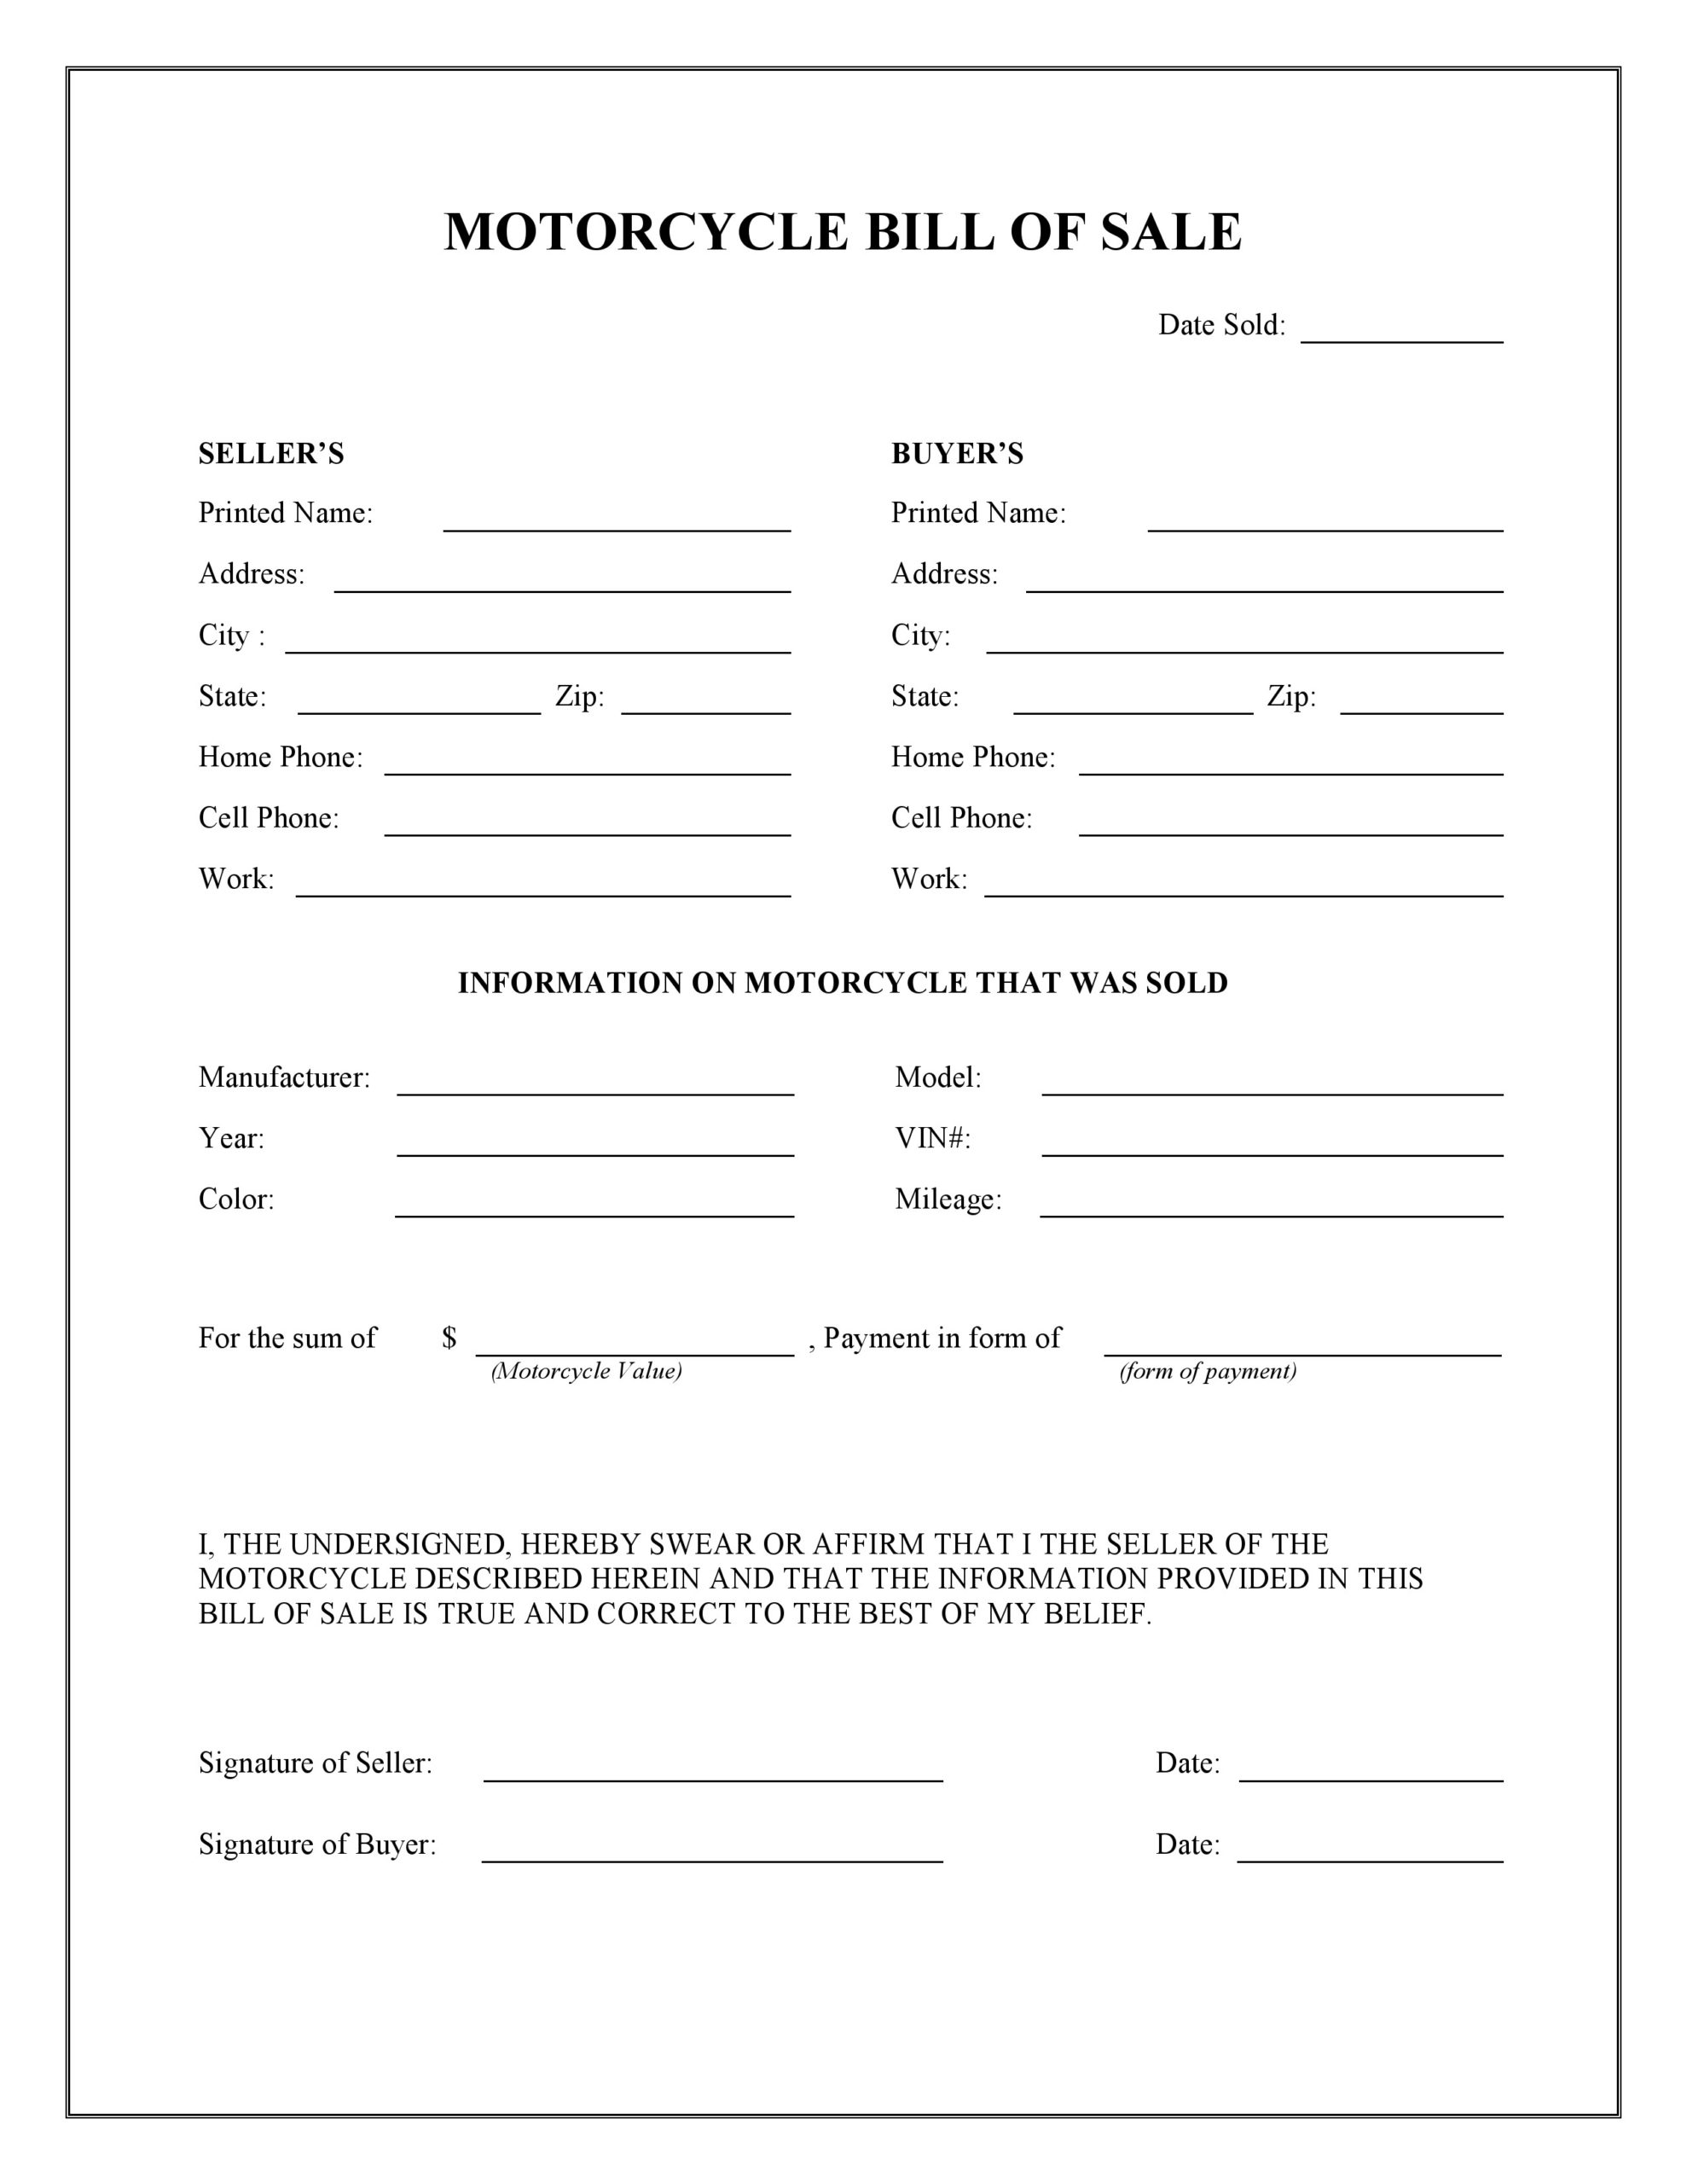 Free Motorcycle Bill Of Sale Form   Pdf   Word   Do It